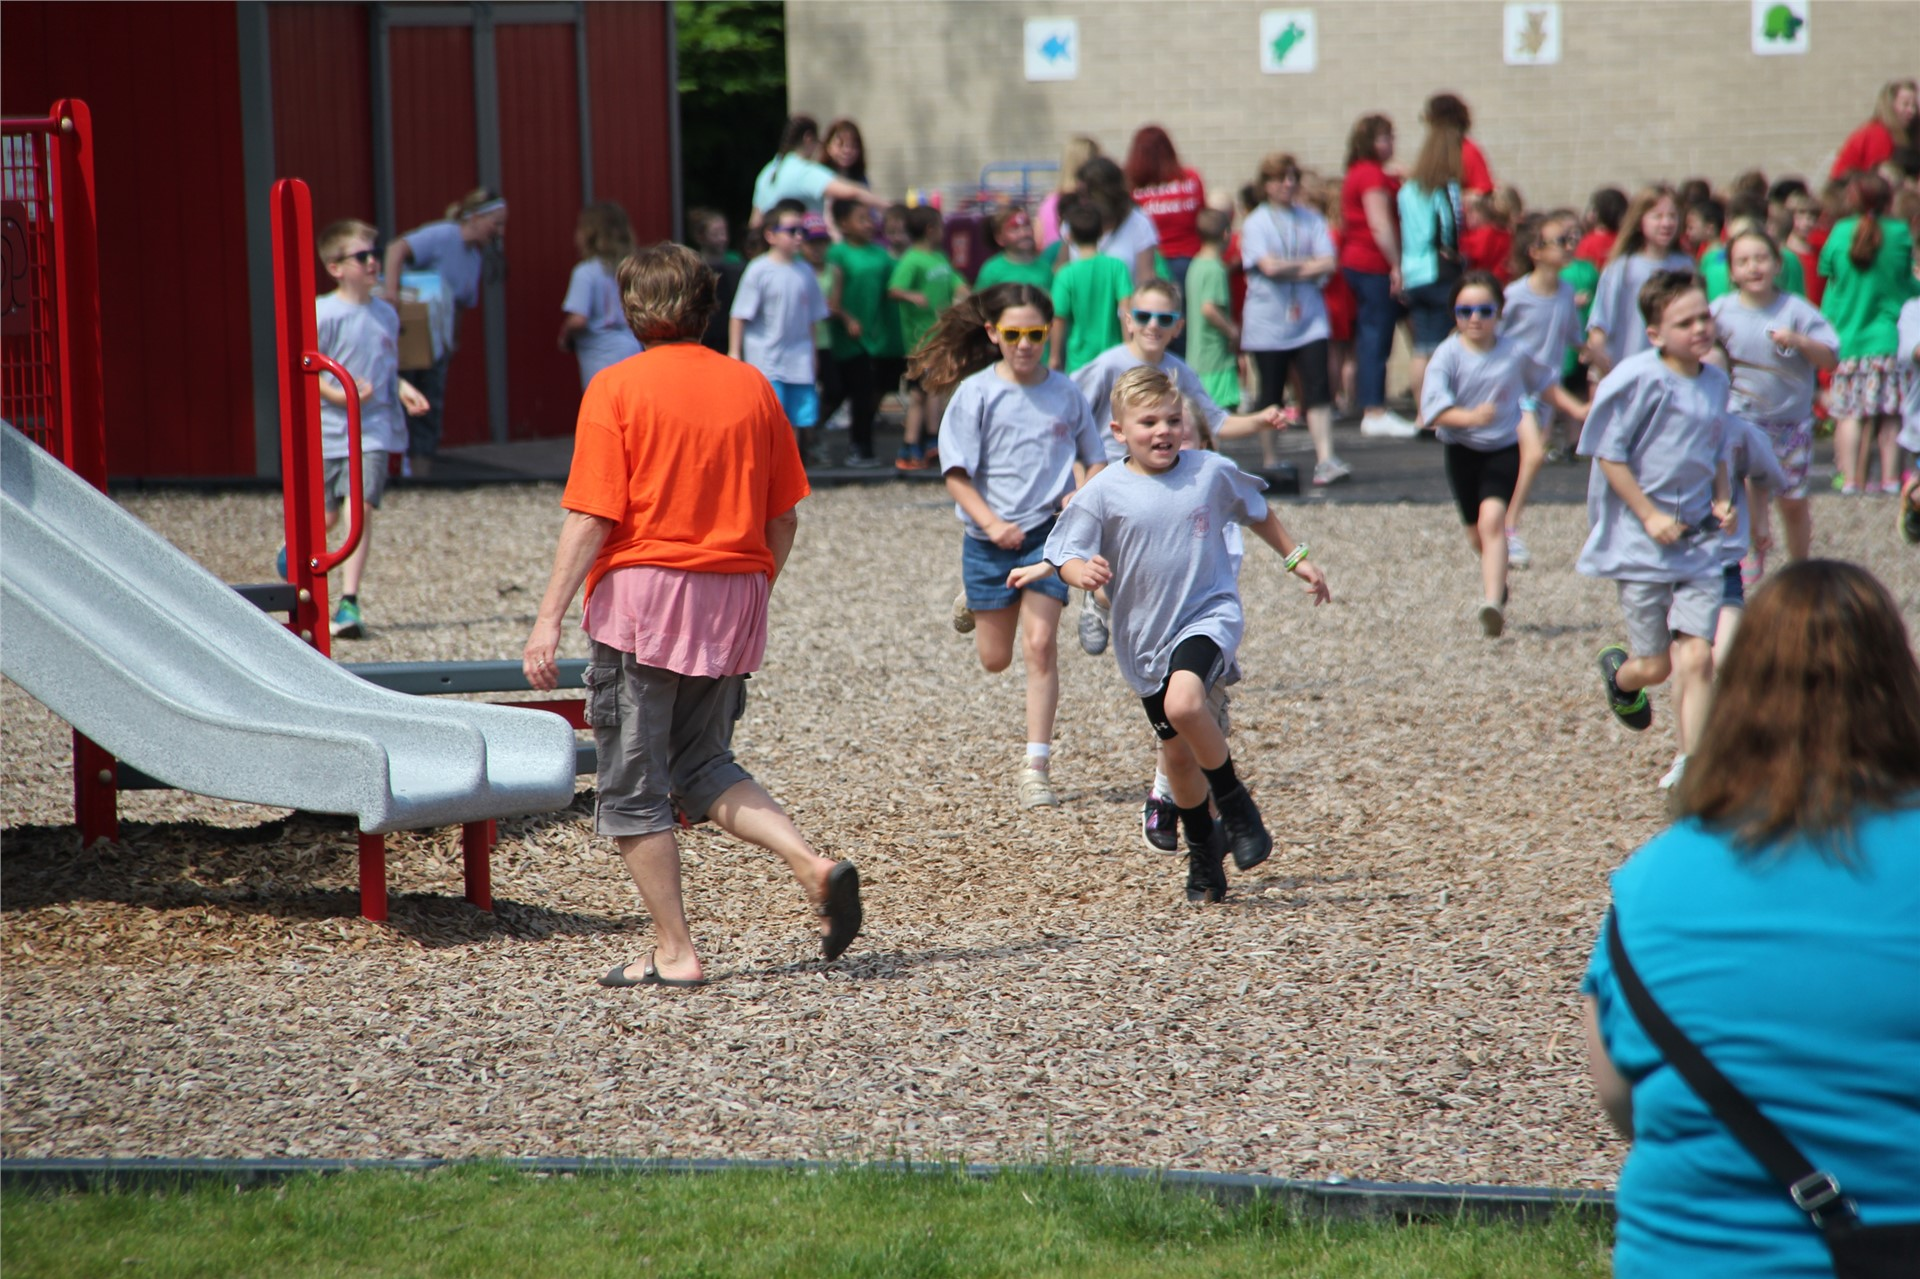 excited students run outside to field day